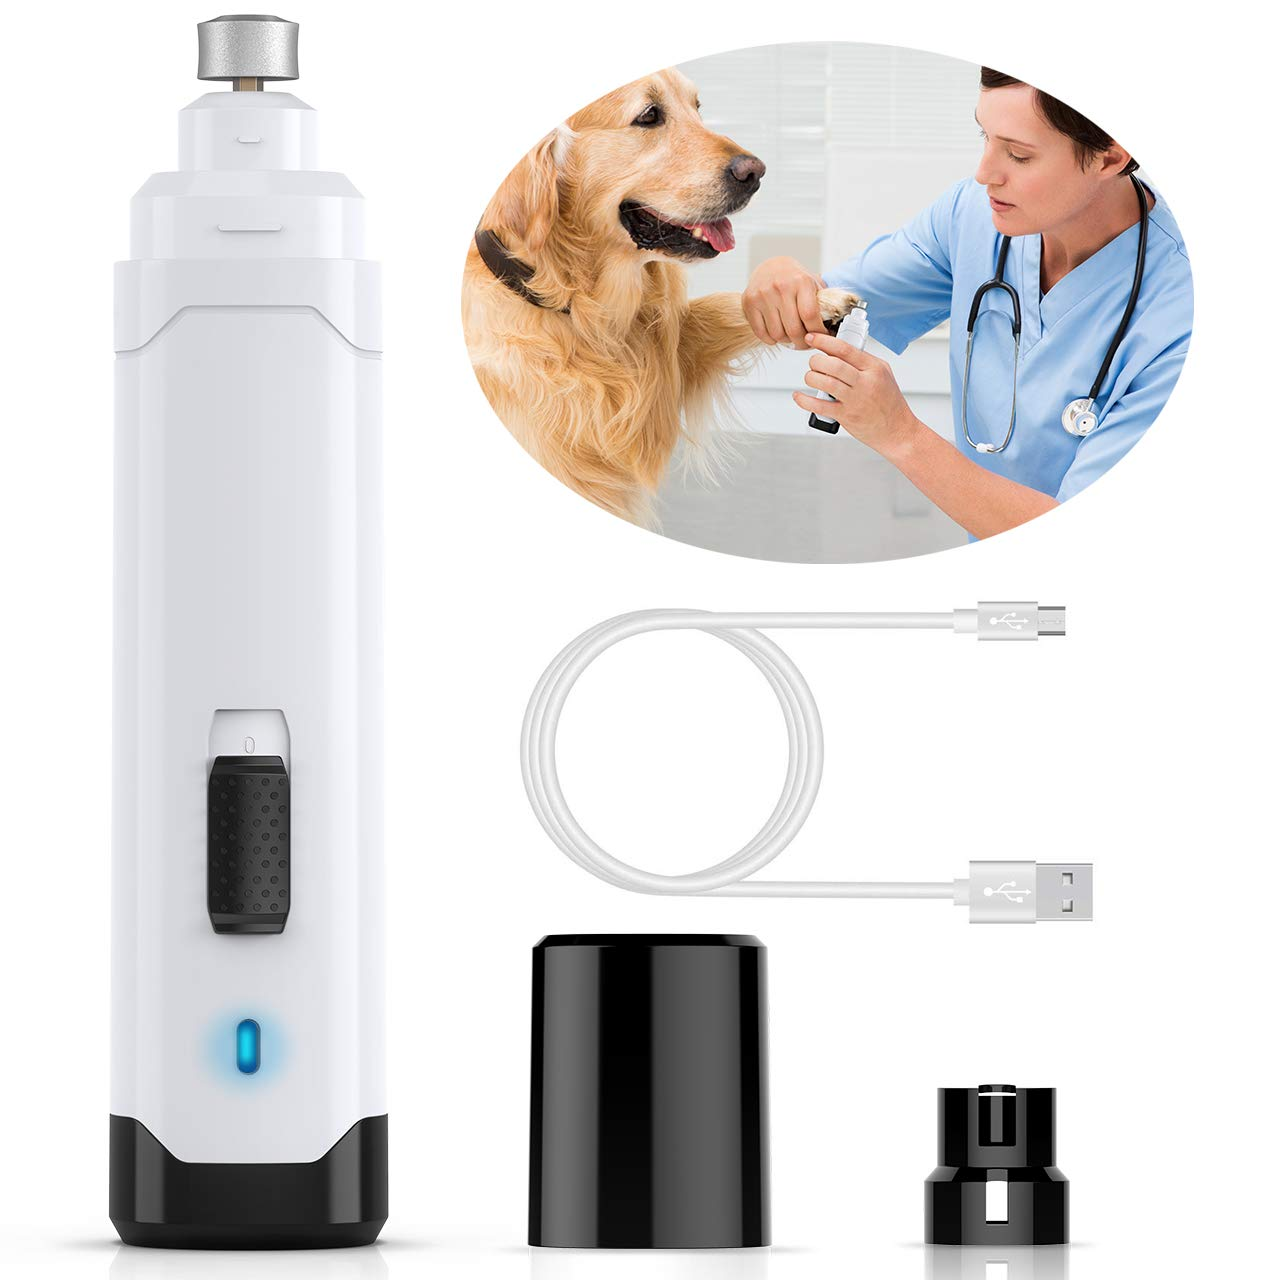 oneisall 2 Speed Powerful Dog Nail Grinder, Rechargeable Wireless Cat Nail Clippers Trimmers Drill Pet Grooming Tool for Small Medium Large Dogs Paws, with USB Charging Cable